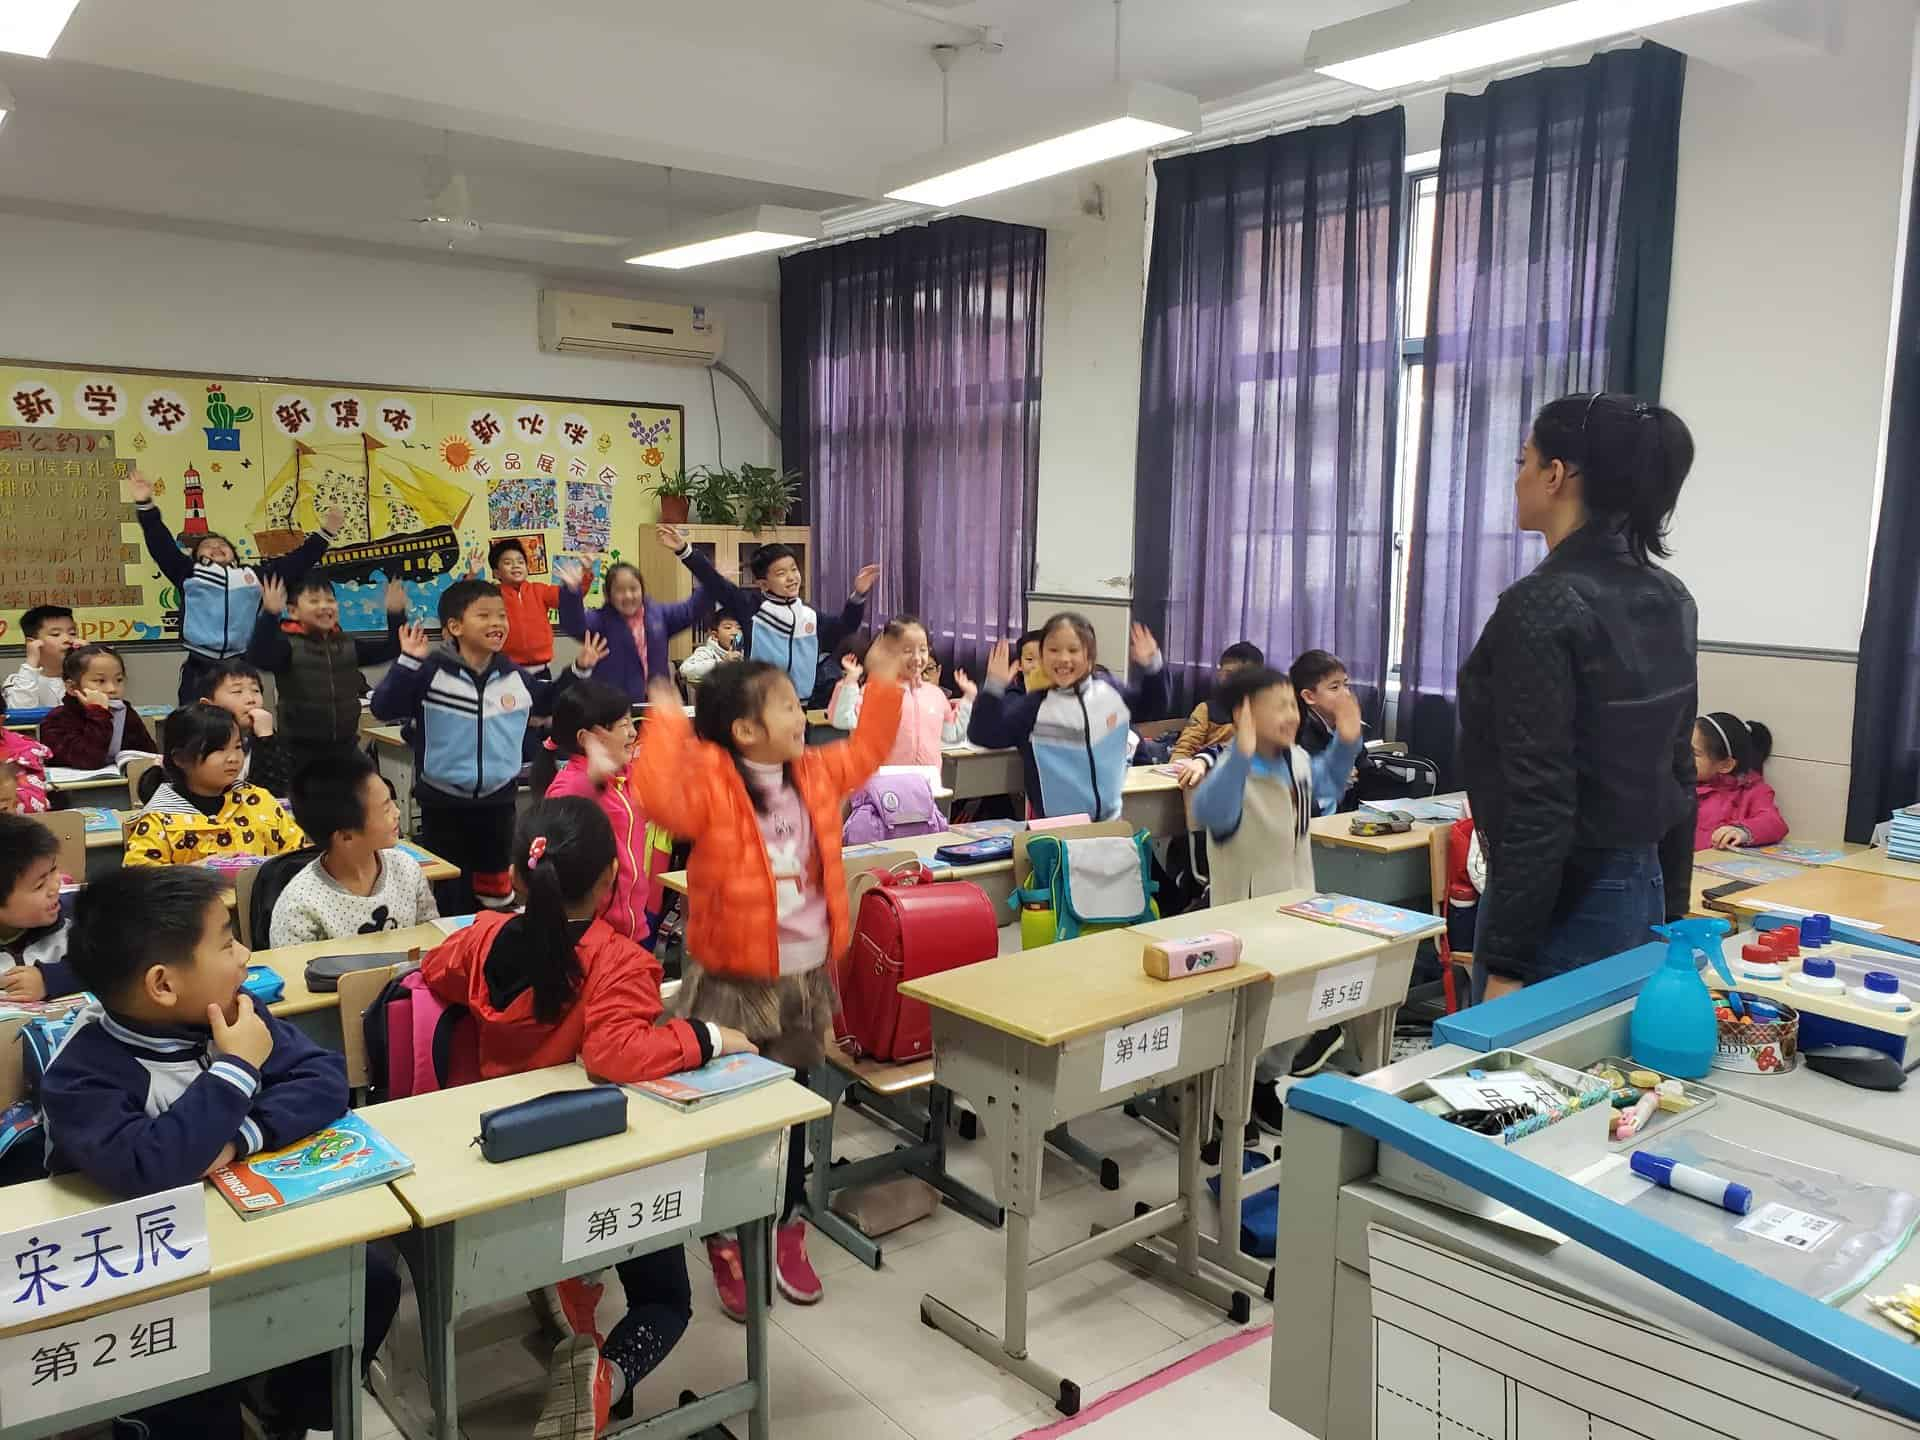 Chinese classroom winter